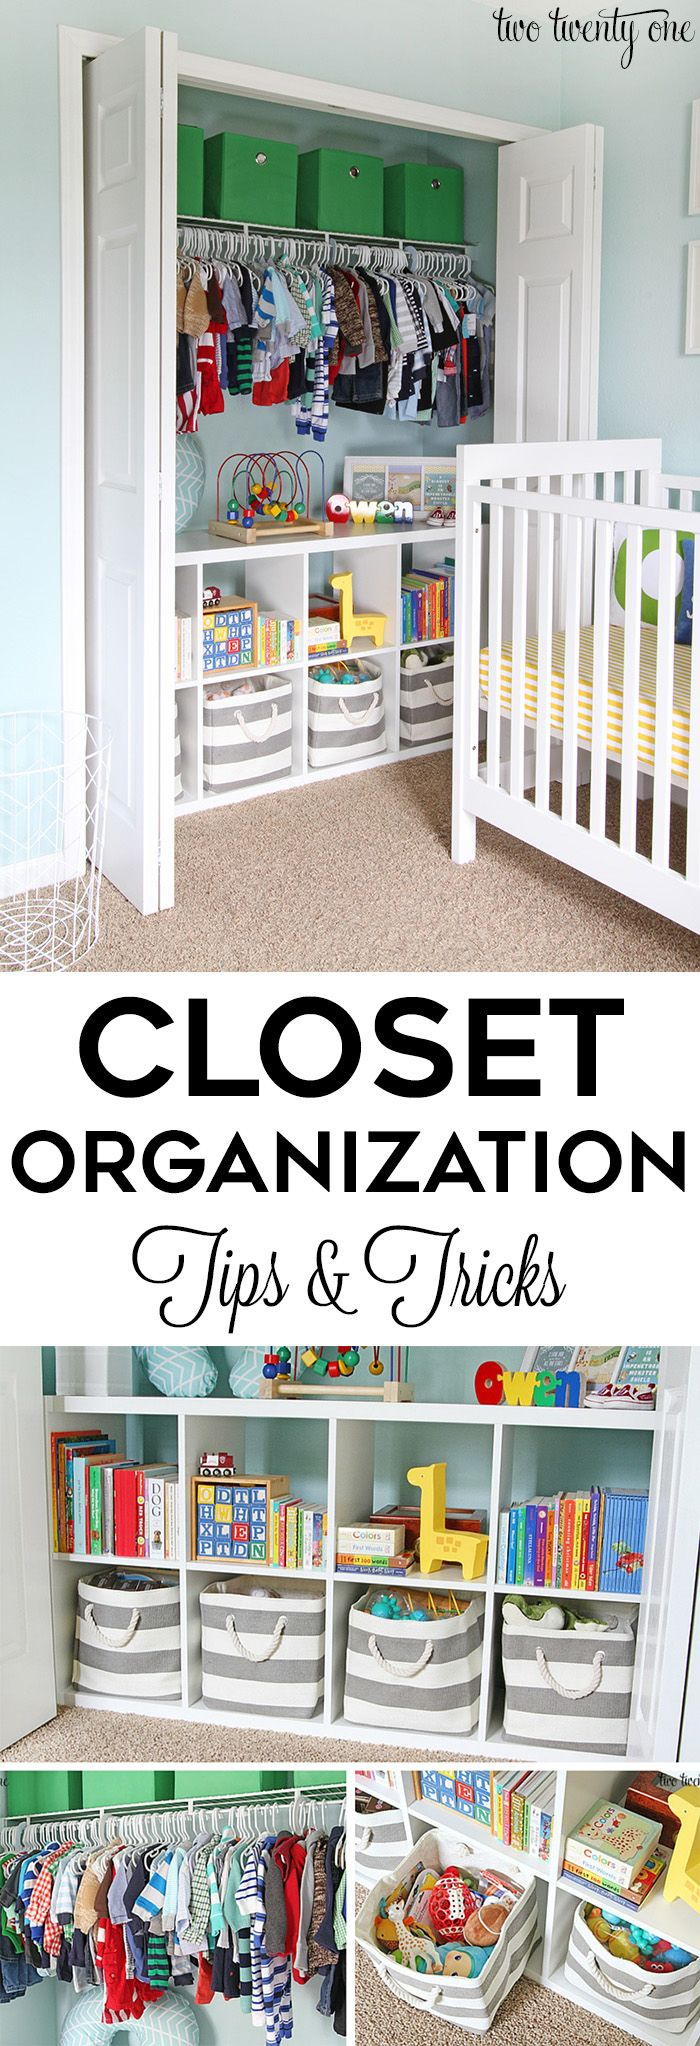 1170 best Home Organization Tips • images on Pinterest